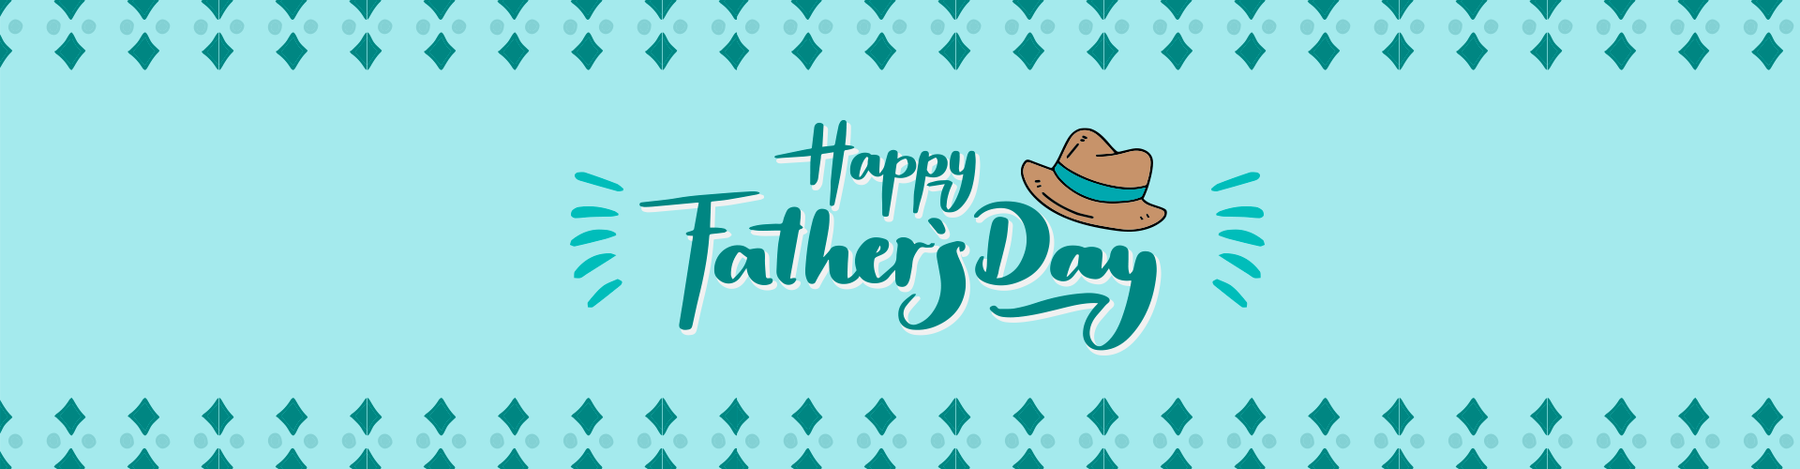 happy father day pop up card for dad banner